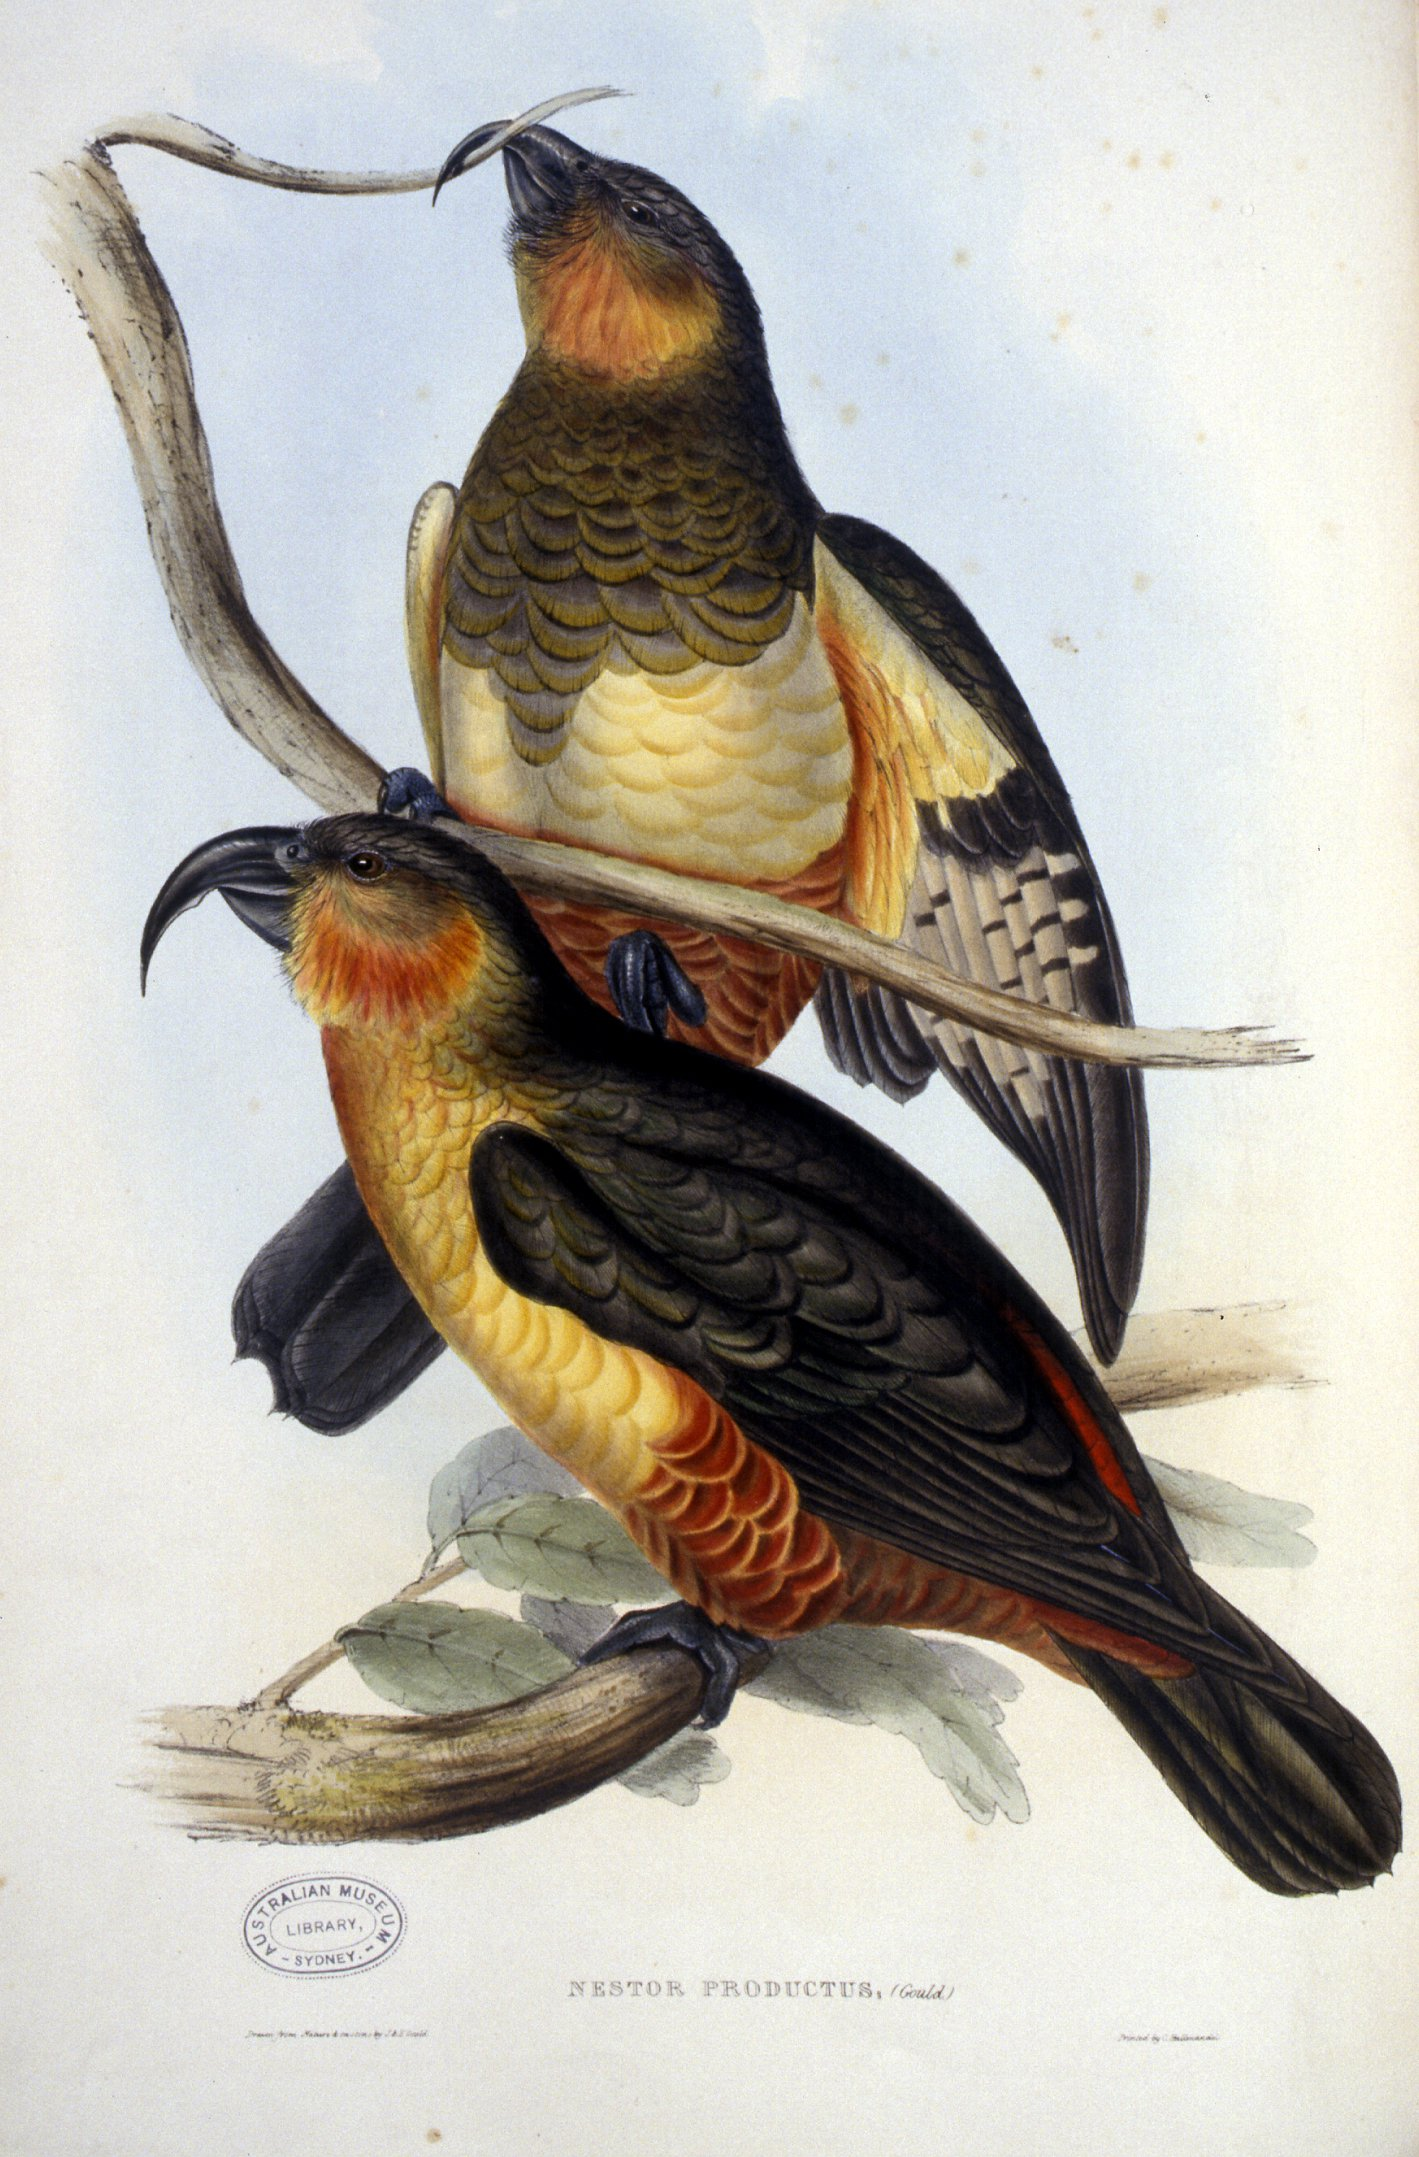 Nestor Productus in The Birds of Australia: in seven volumes by John Gould